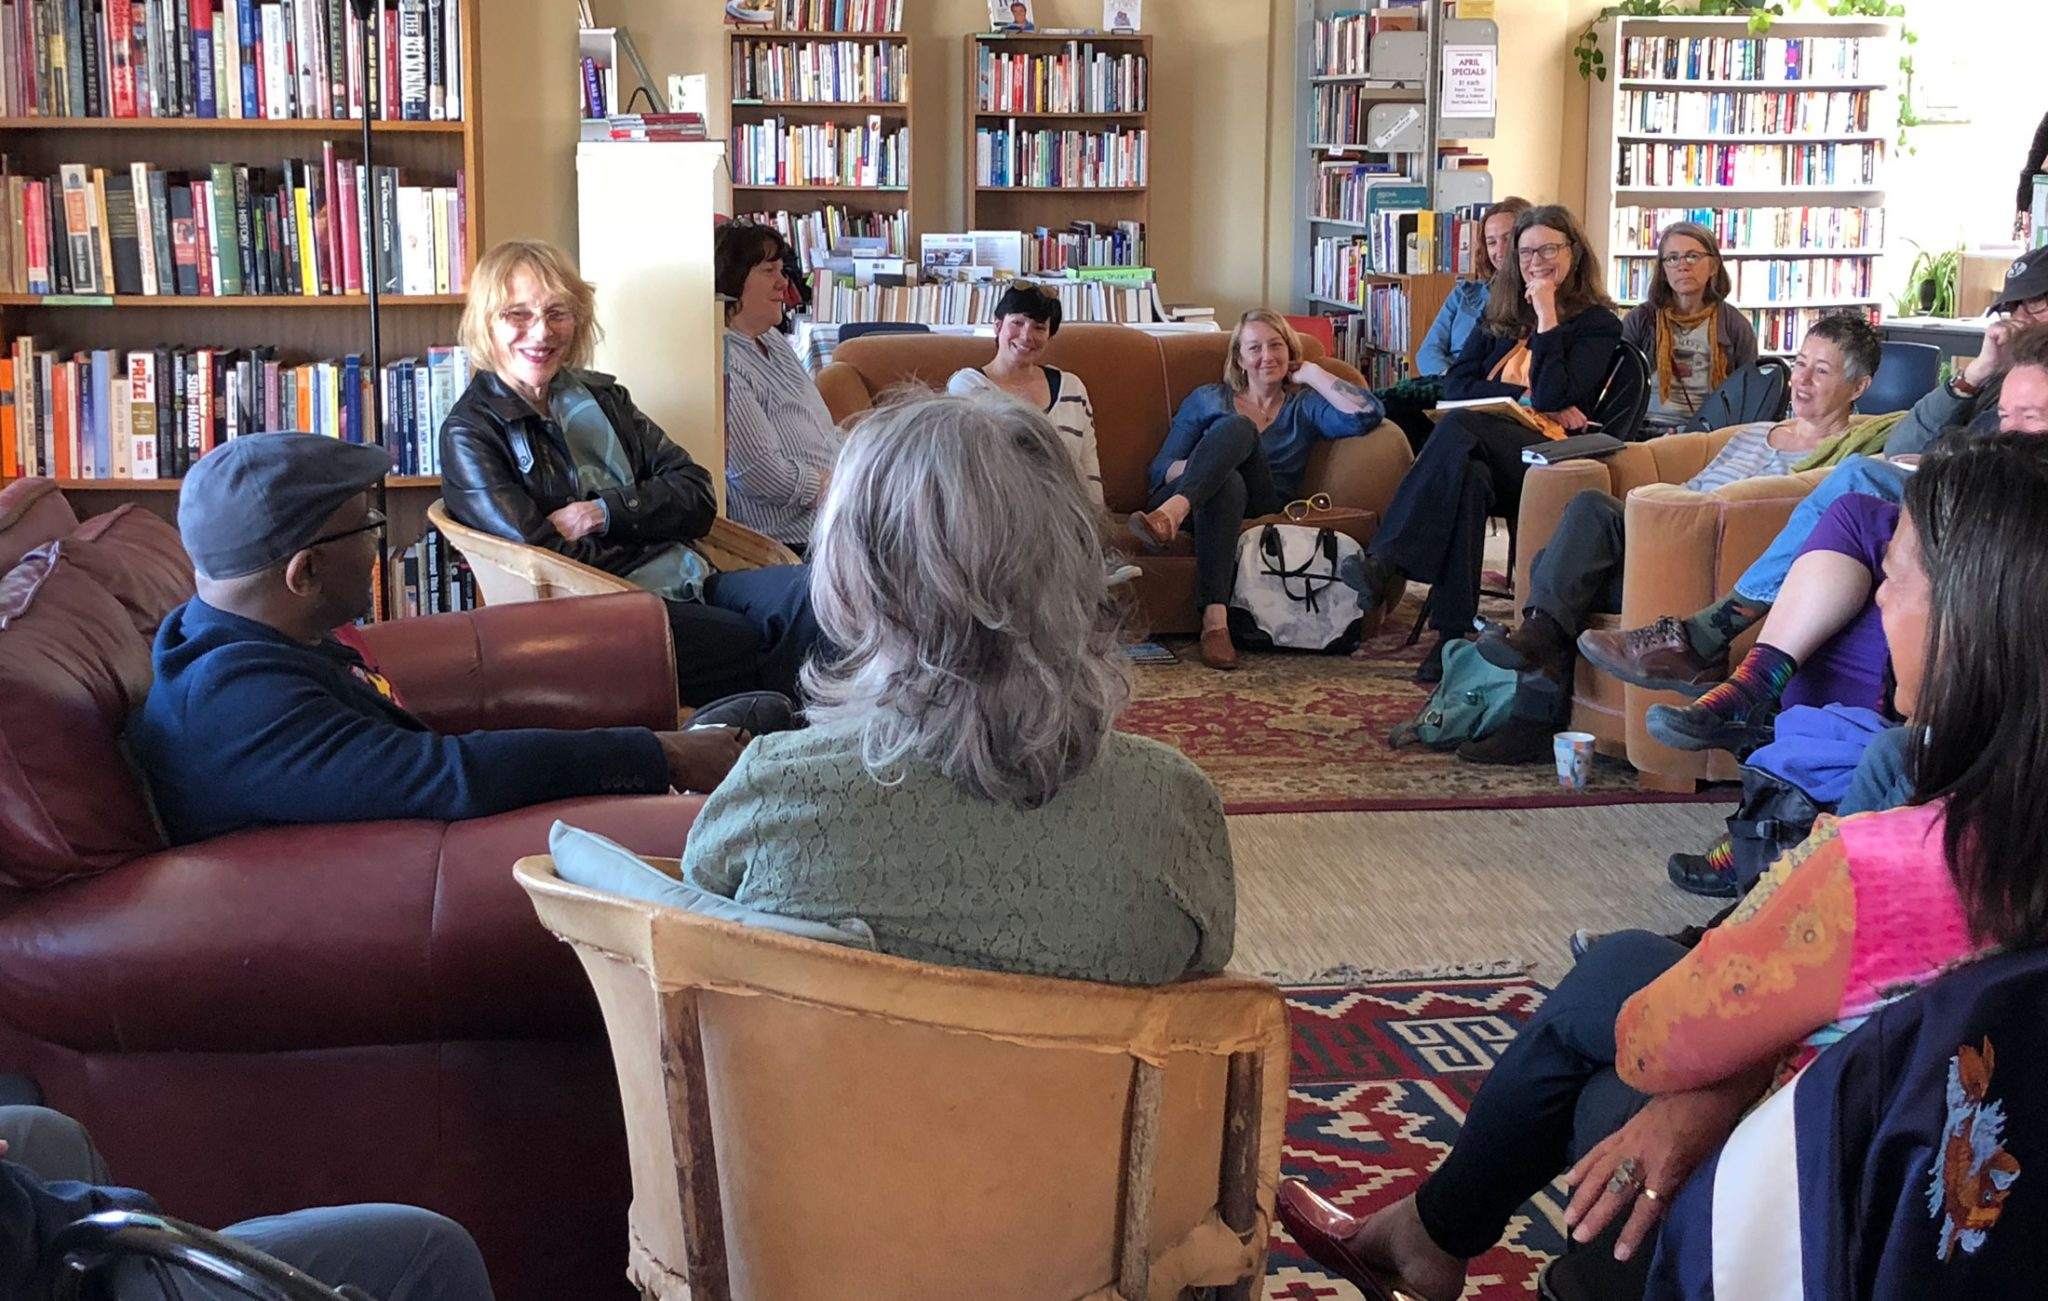 A discussion group talking as part of the Taos Writers Showcase at SOMOS